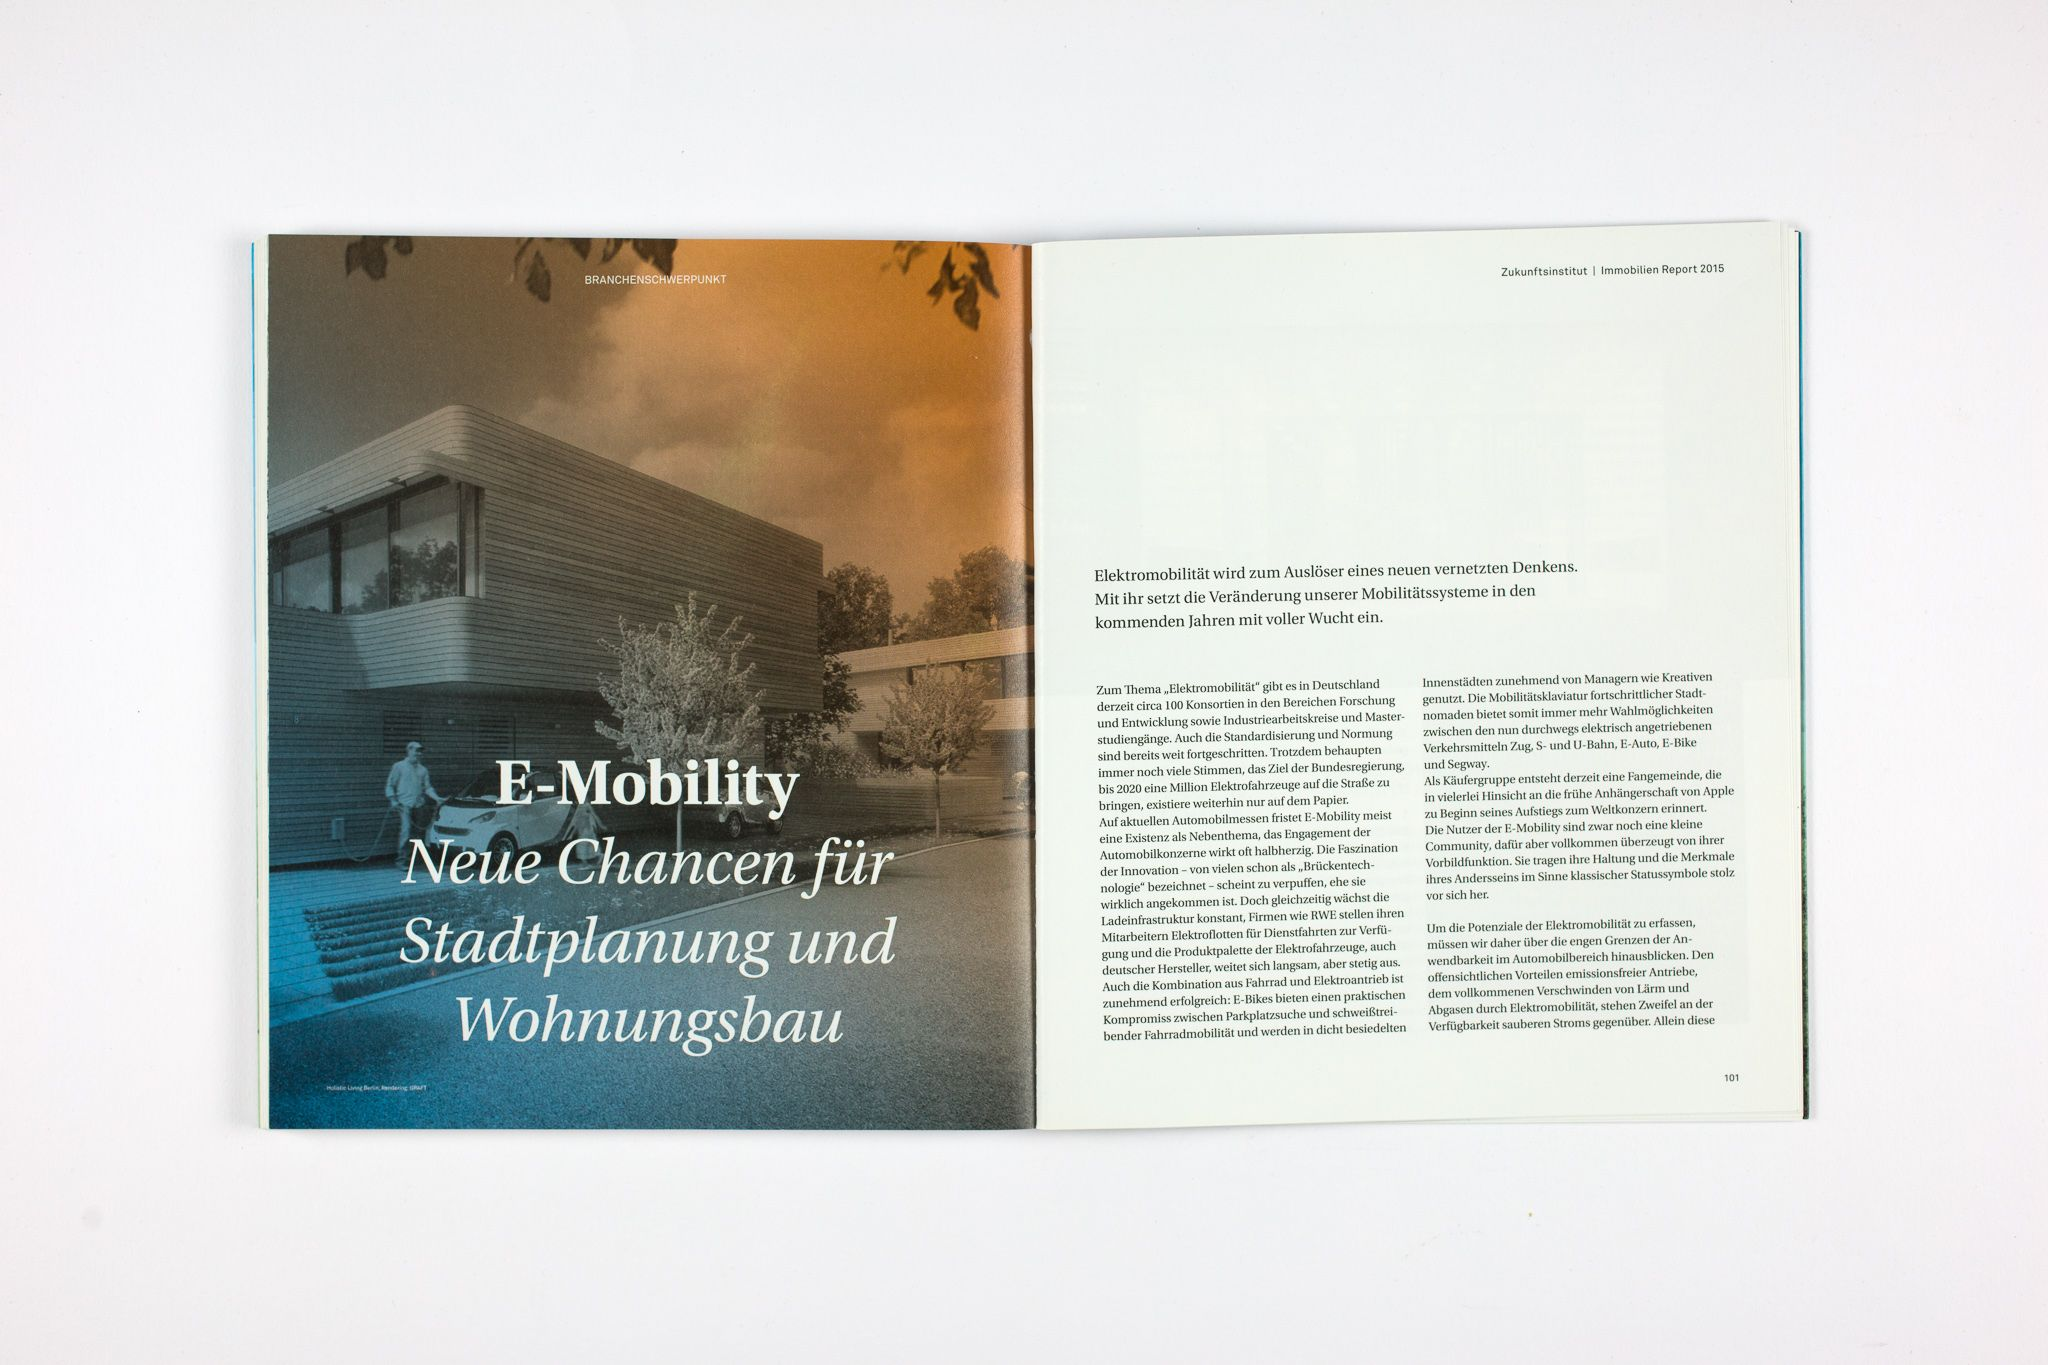 The report offers valuable insight for all planners and producers of spaces, whether in the real estate and construction sector, architects, product designers and retailers, private builders or representatives of the mobility industry.